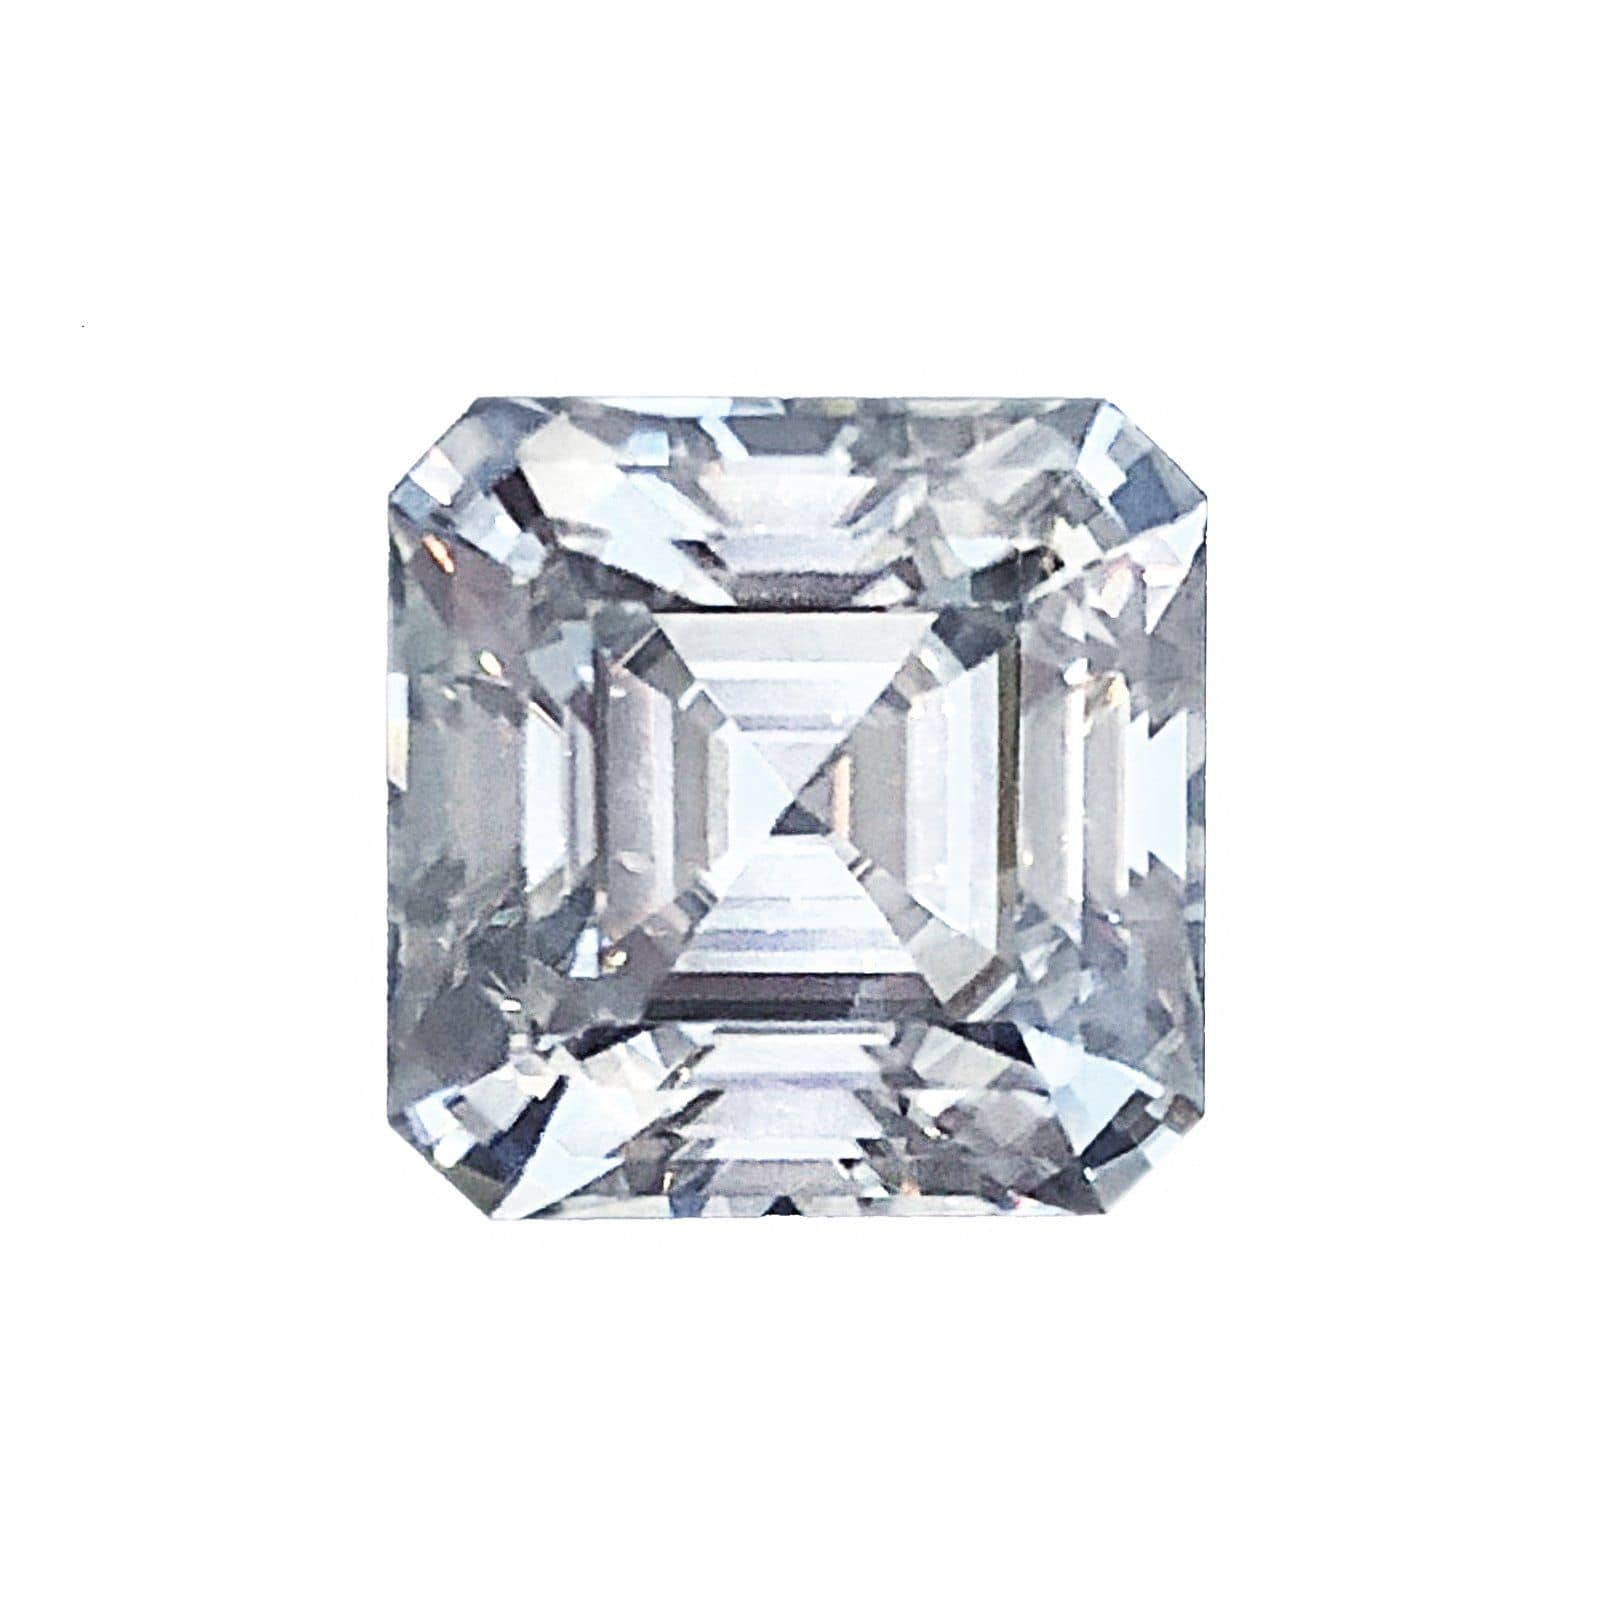 Harro Gem Asscher Moissanite Loose Moissanite Harro Gem